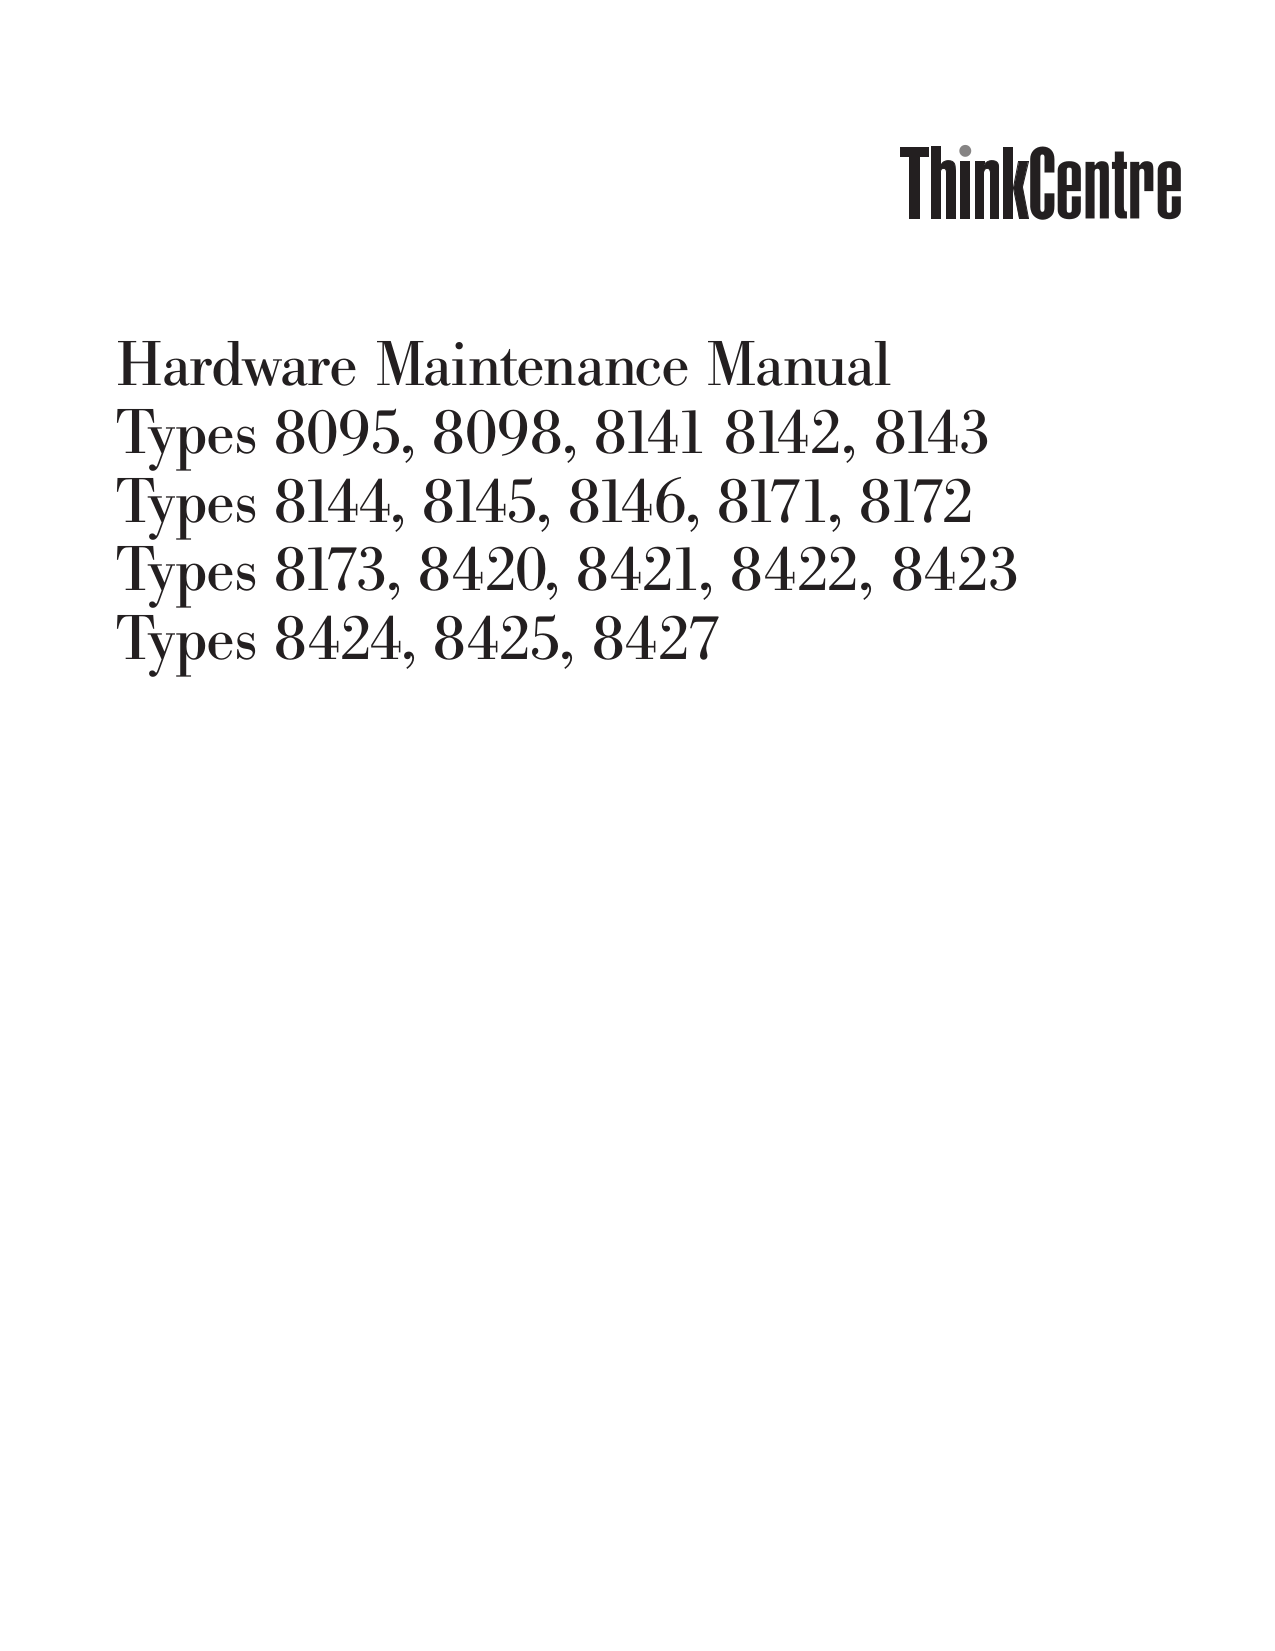 pdf for Lenovo Desktop ThinkCentre A51p 8420 manual